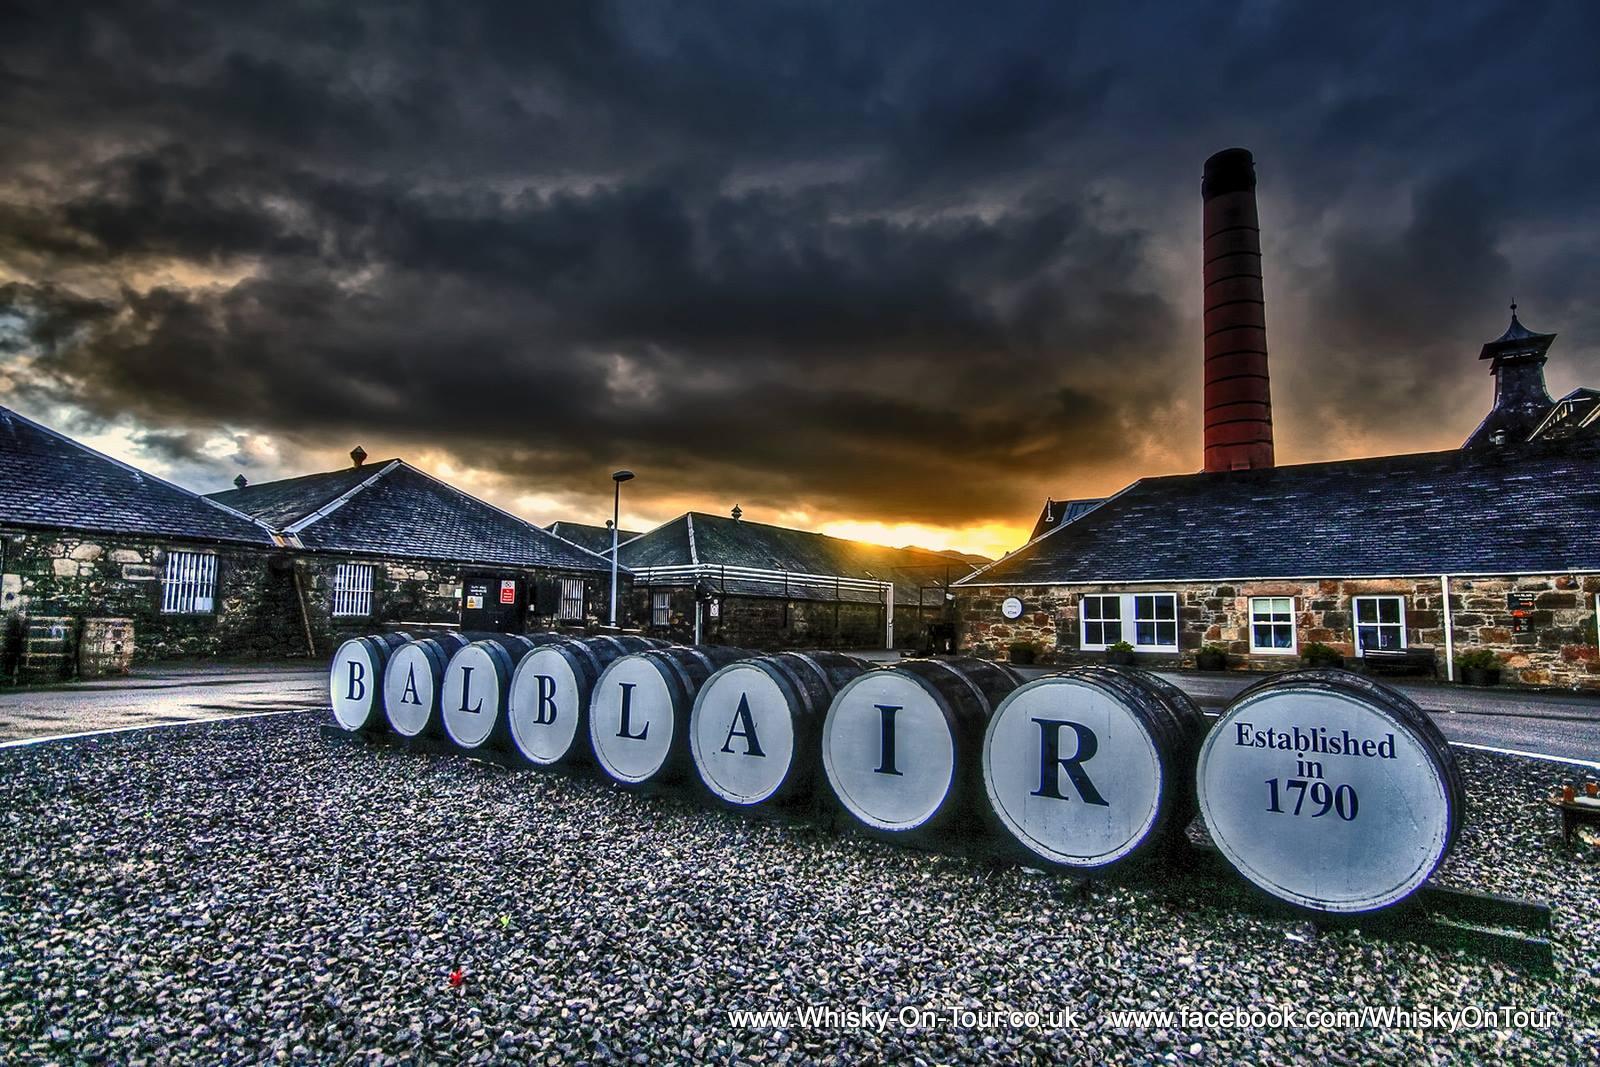 Balblair Distillery in the Scottish Highlands